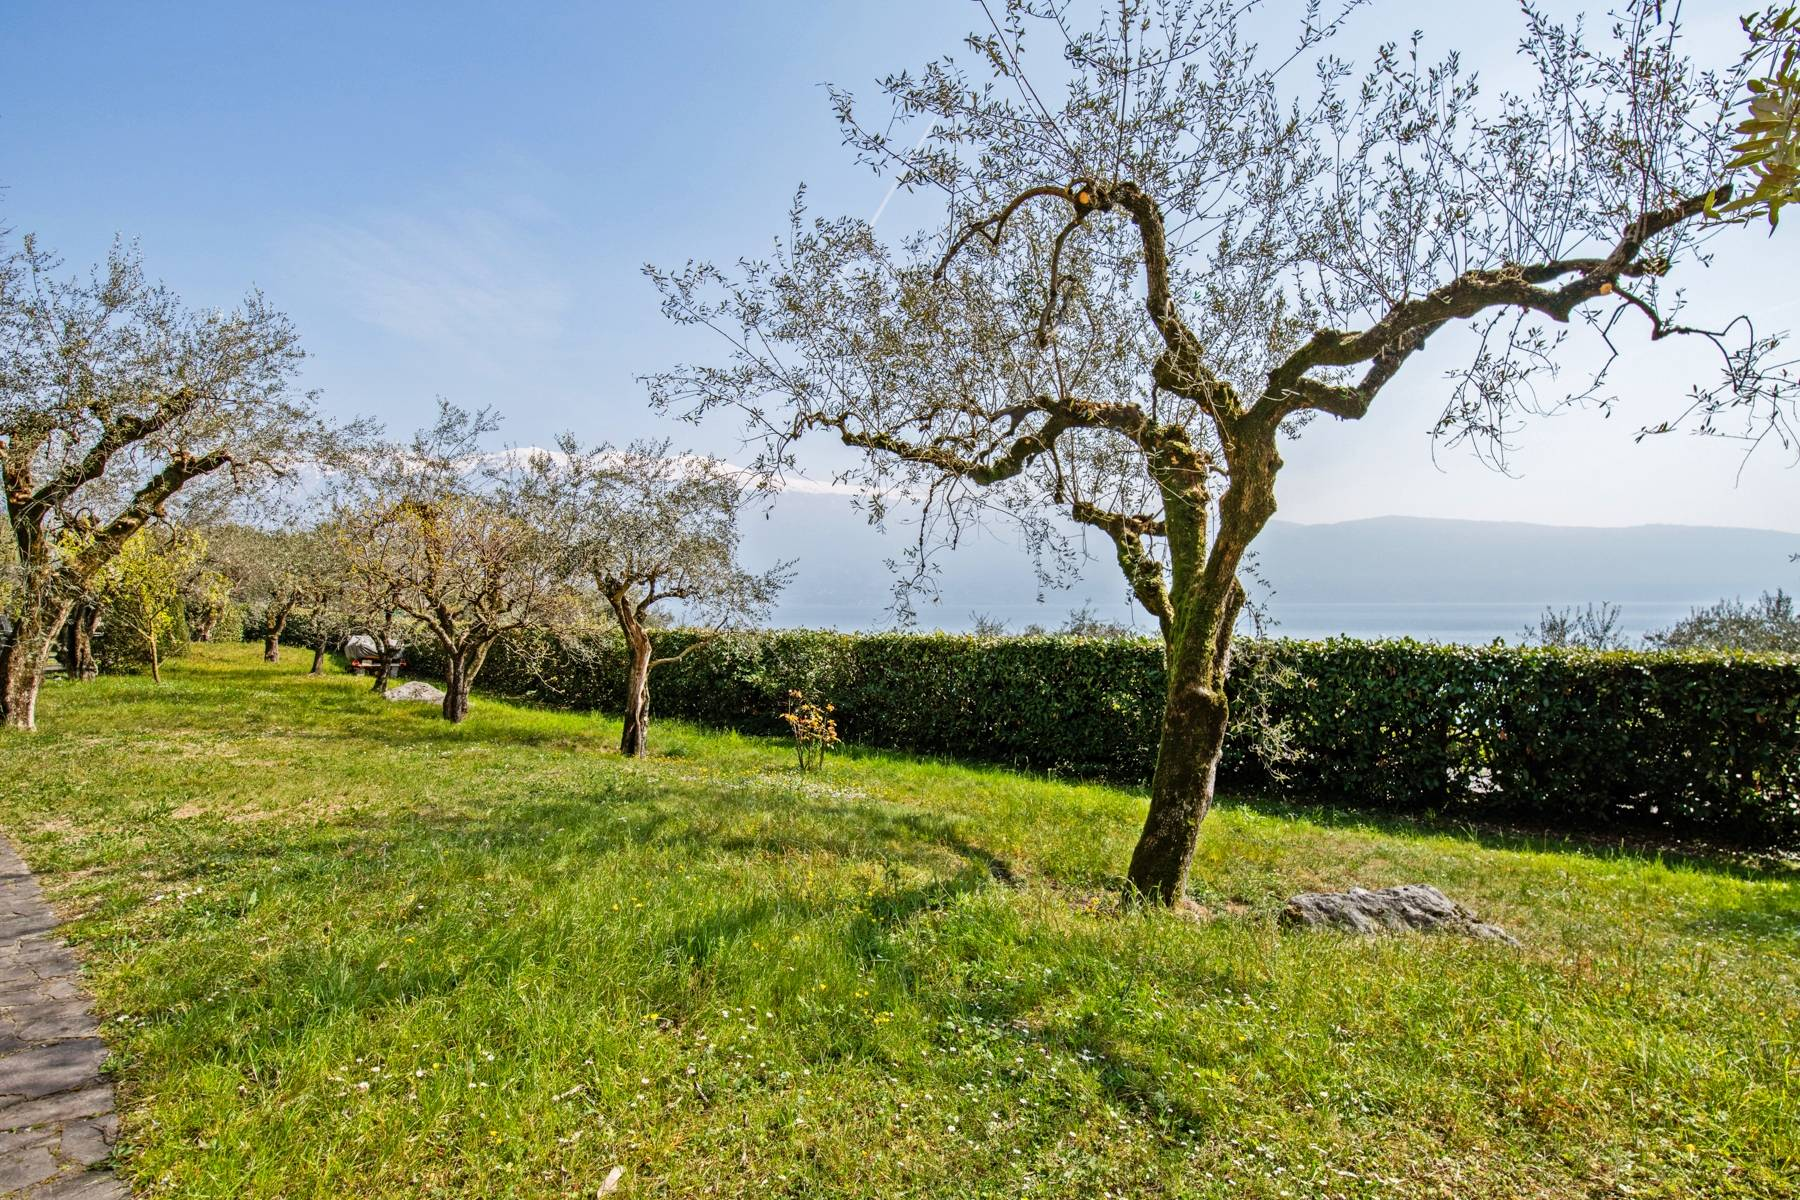 Villa with lake view in Gargnano surrounded by olive trees - 24